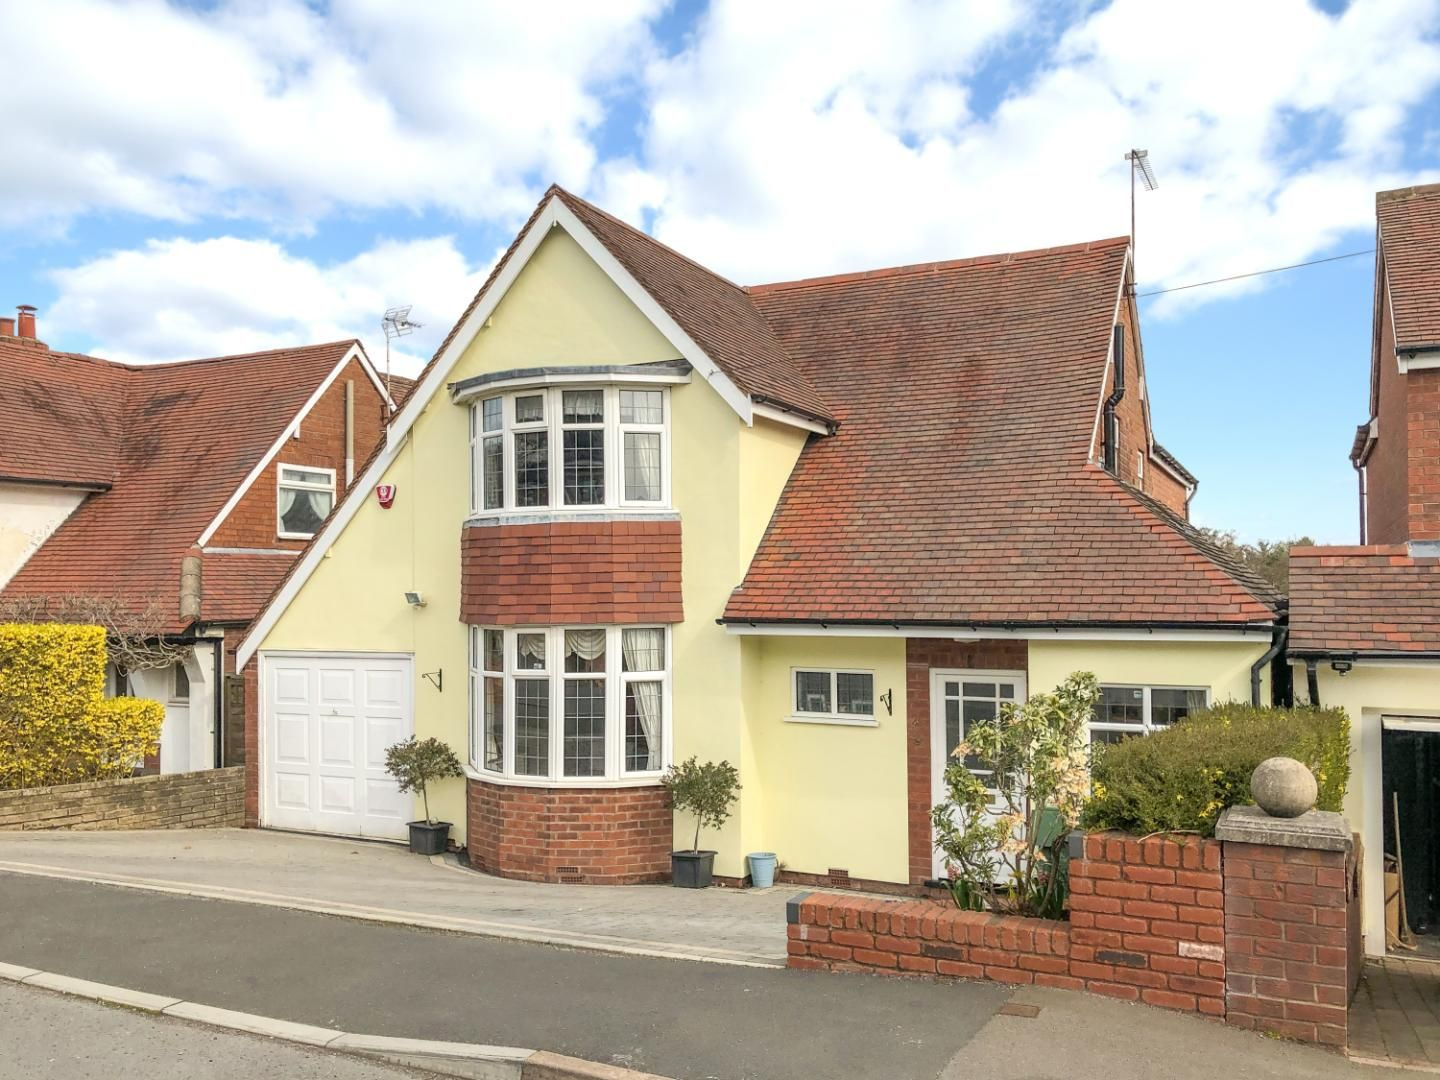 3 bed detached for sale in Reservoir Road, Cofton Hackett 1